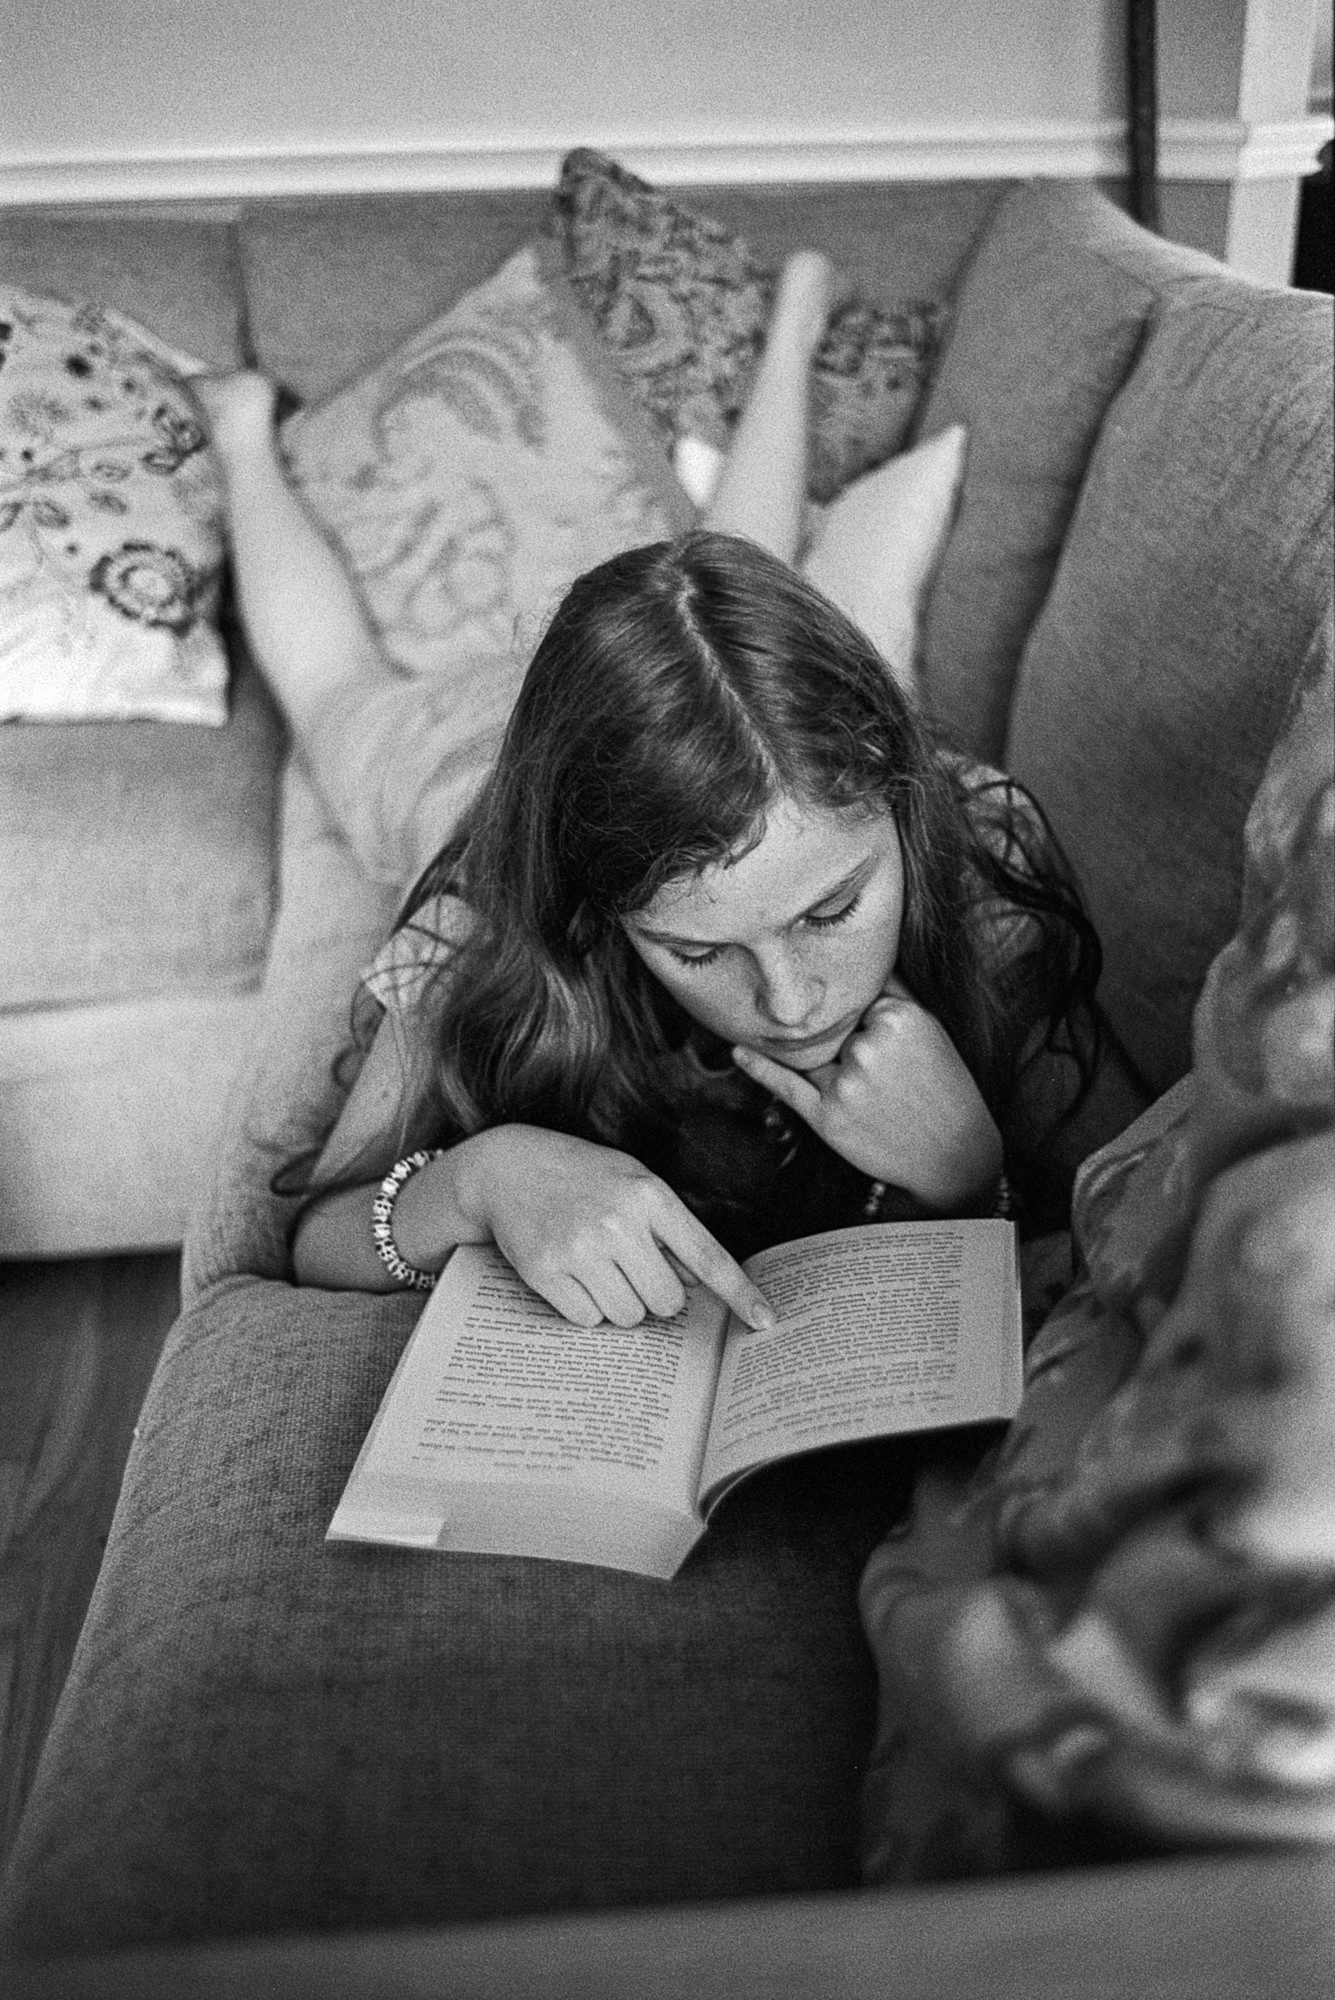 An adolescent girl reading, propped up on her elbows, on a sofa. Her finger absently points at a page